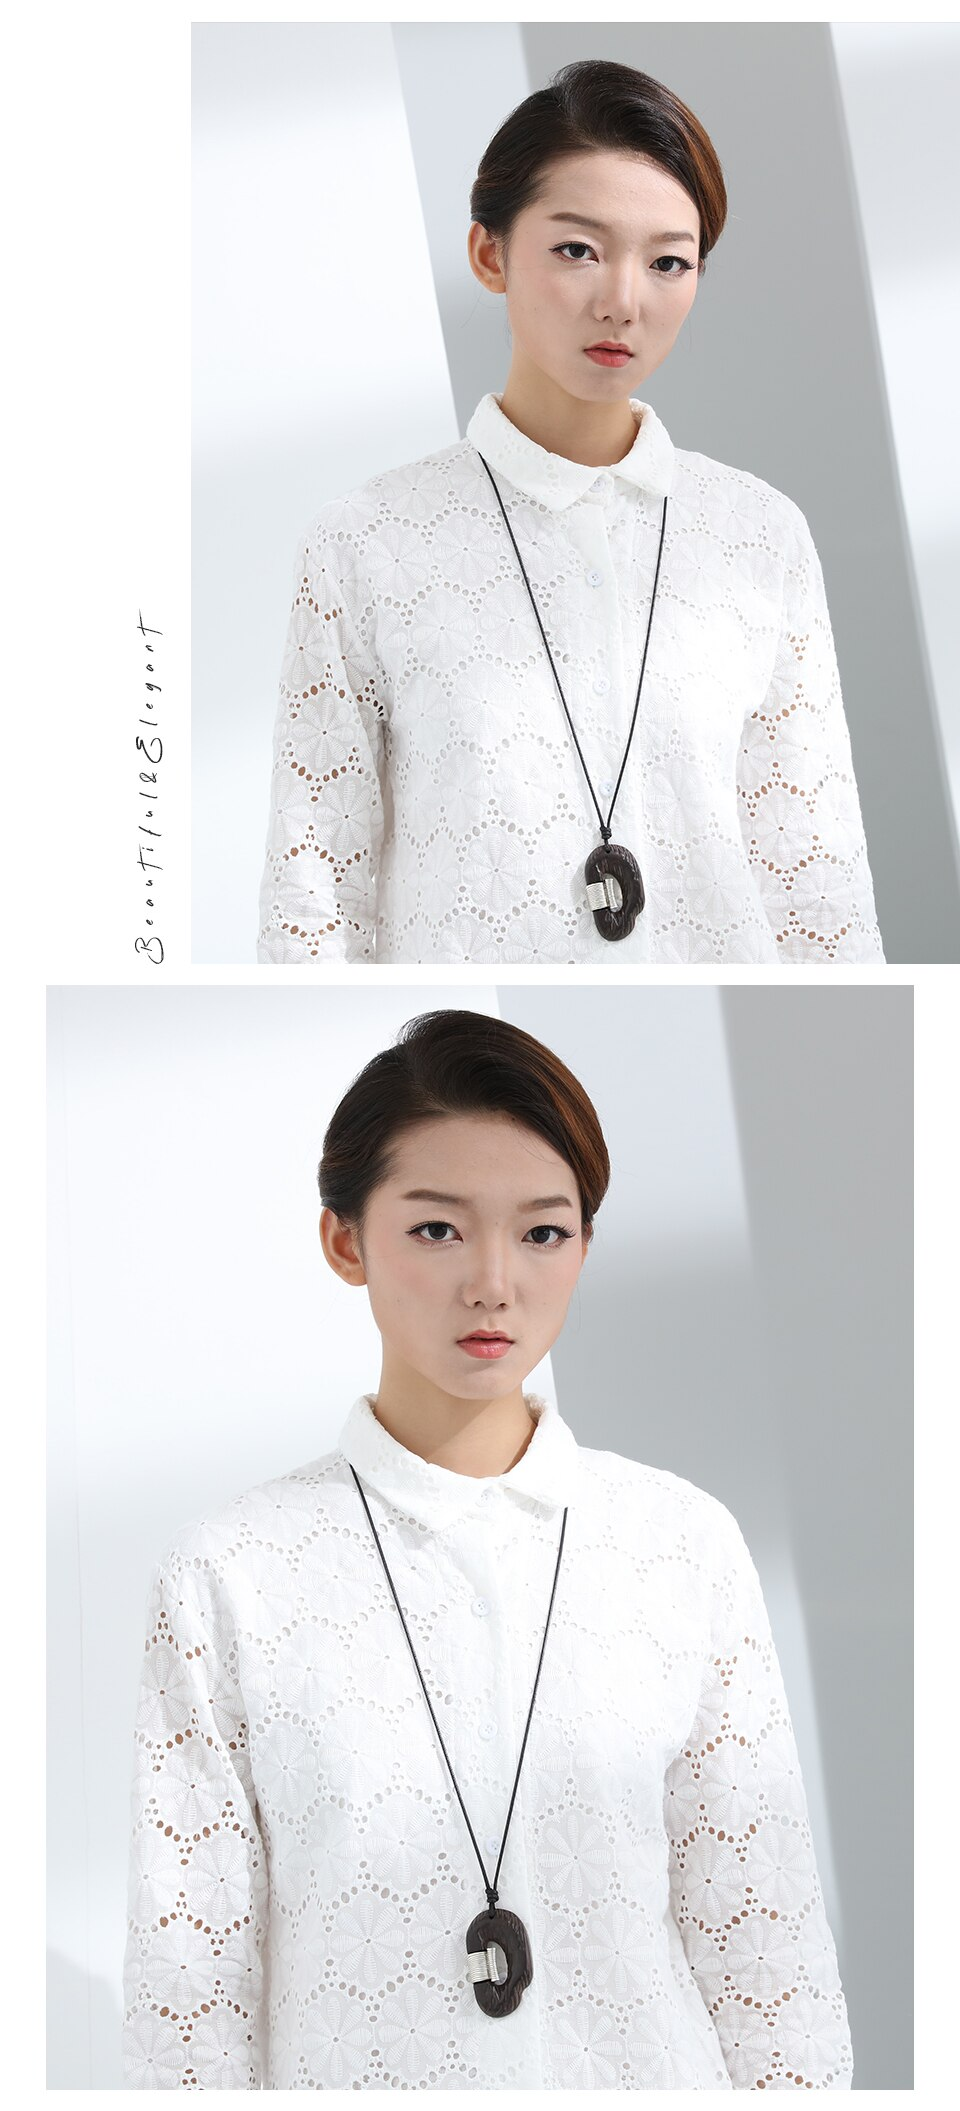 Vintage Handmade Sweater Accessories Wholesale Women Pendant Necklace Wooden Adjustable Sandalwood Jewelry for Female Decoration